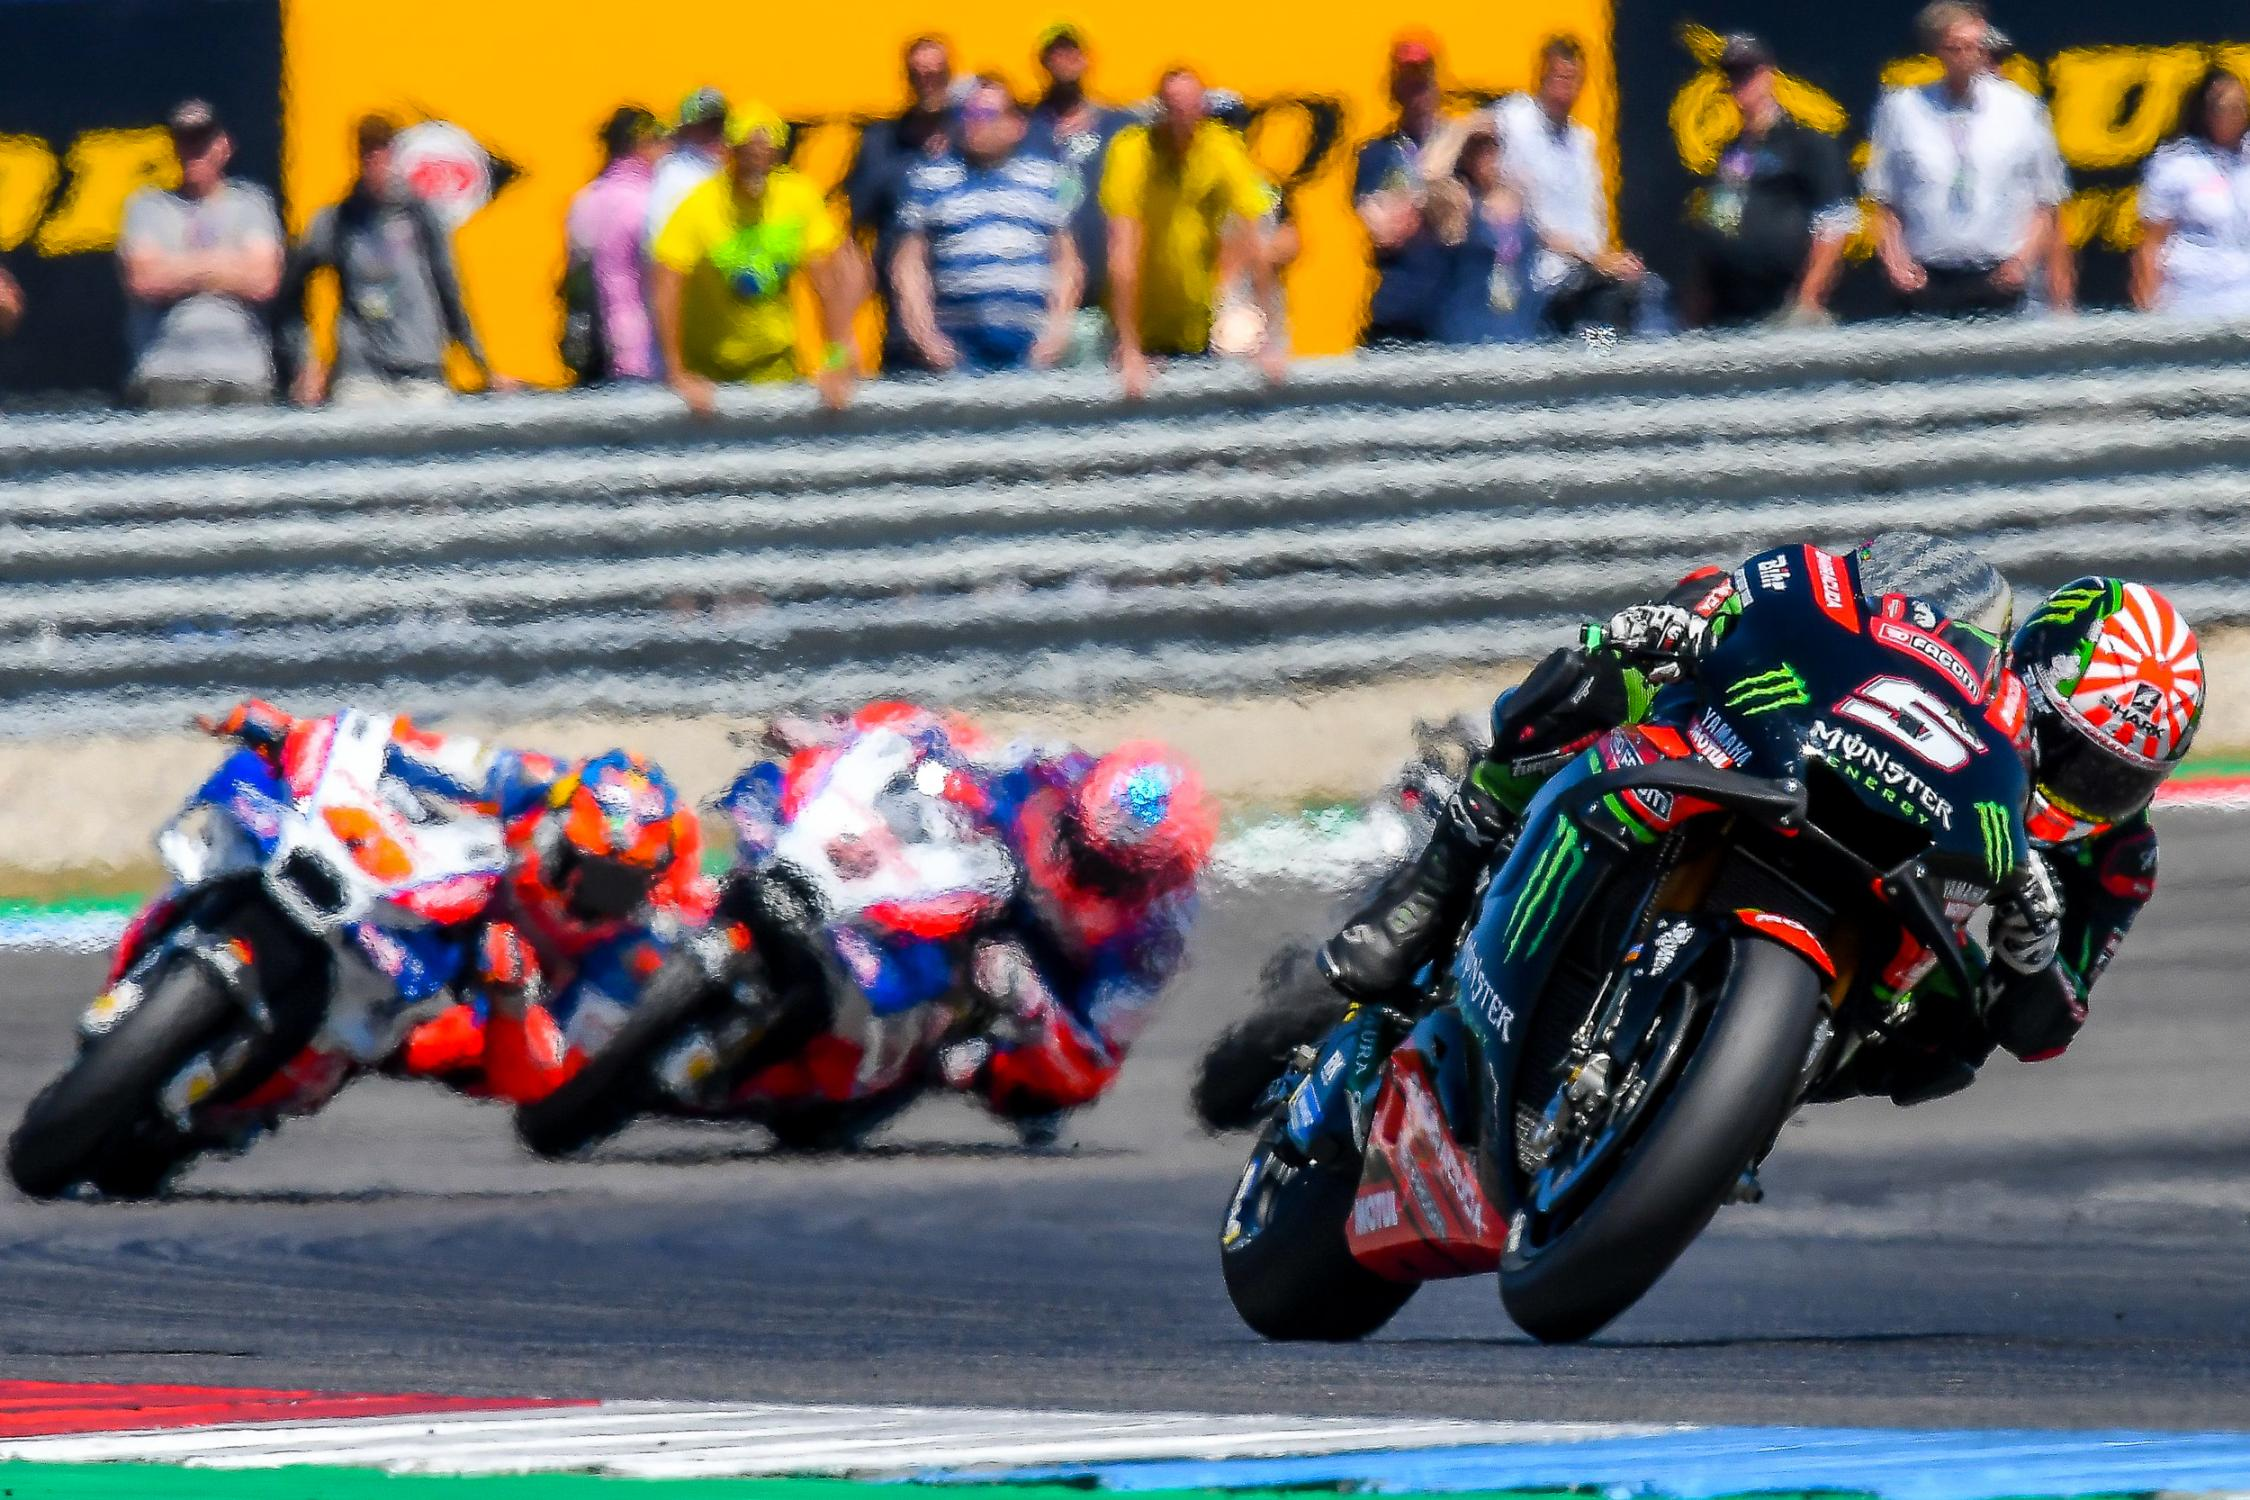 Zarco's early season form has gone missing recently, but he wasn't far away  from the leaders.